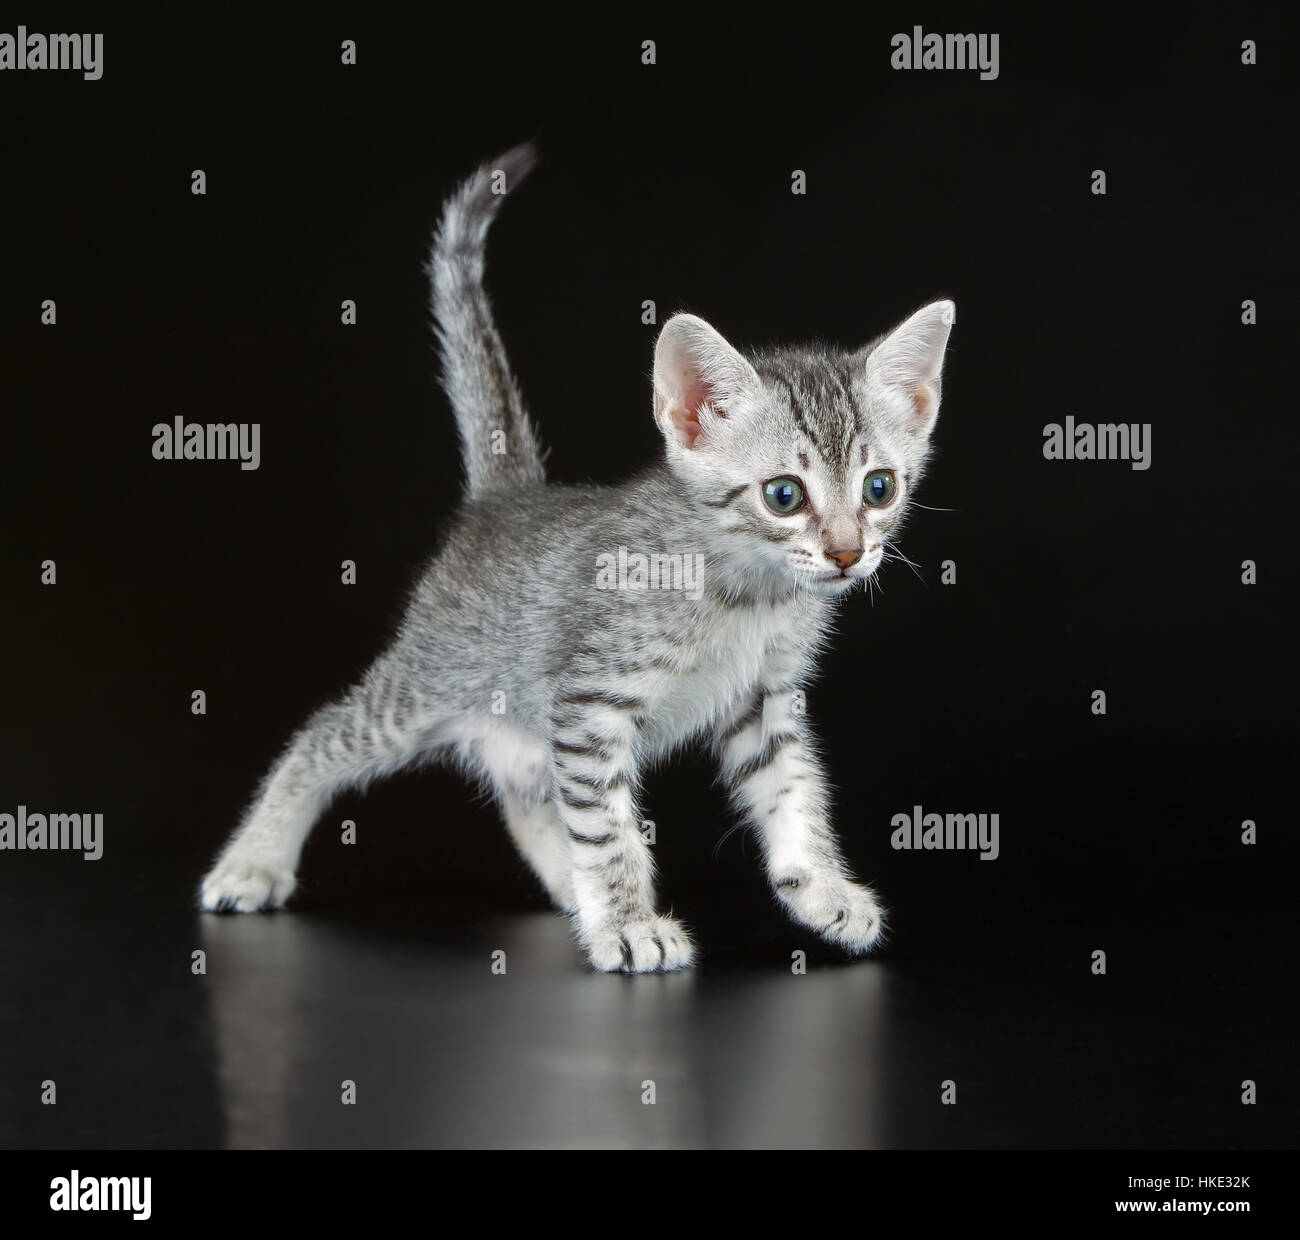 Silver Egyptian Mau Little Kitten Felis catus Naturally spotted